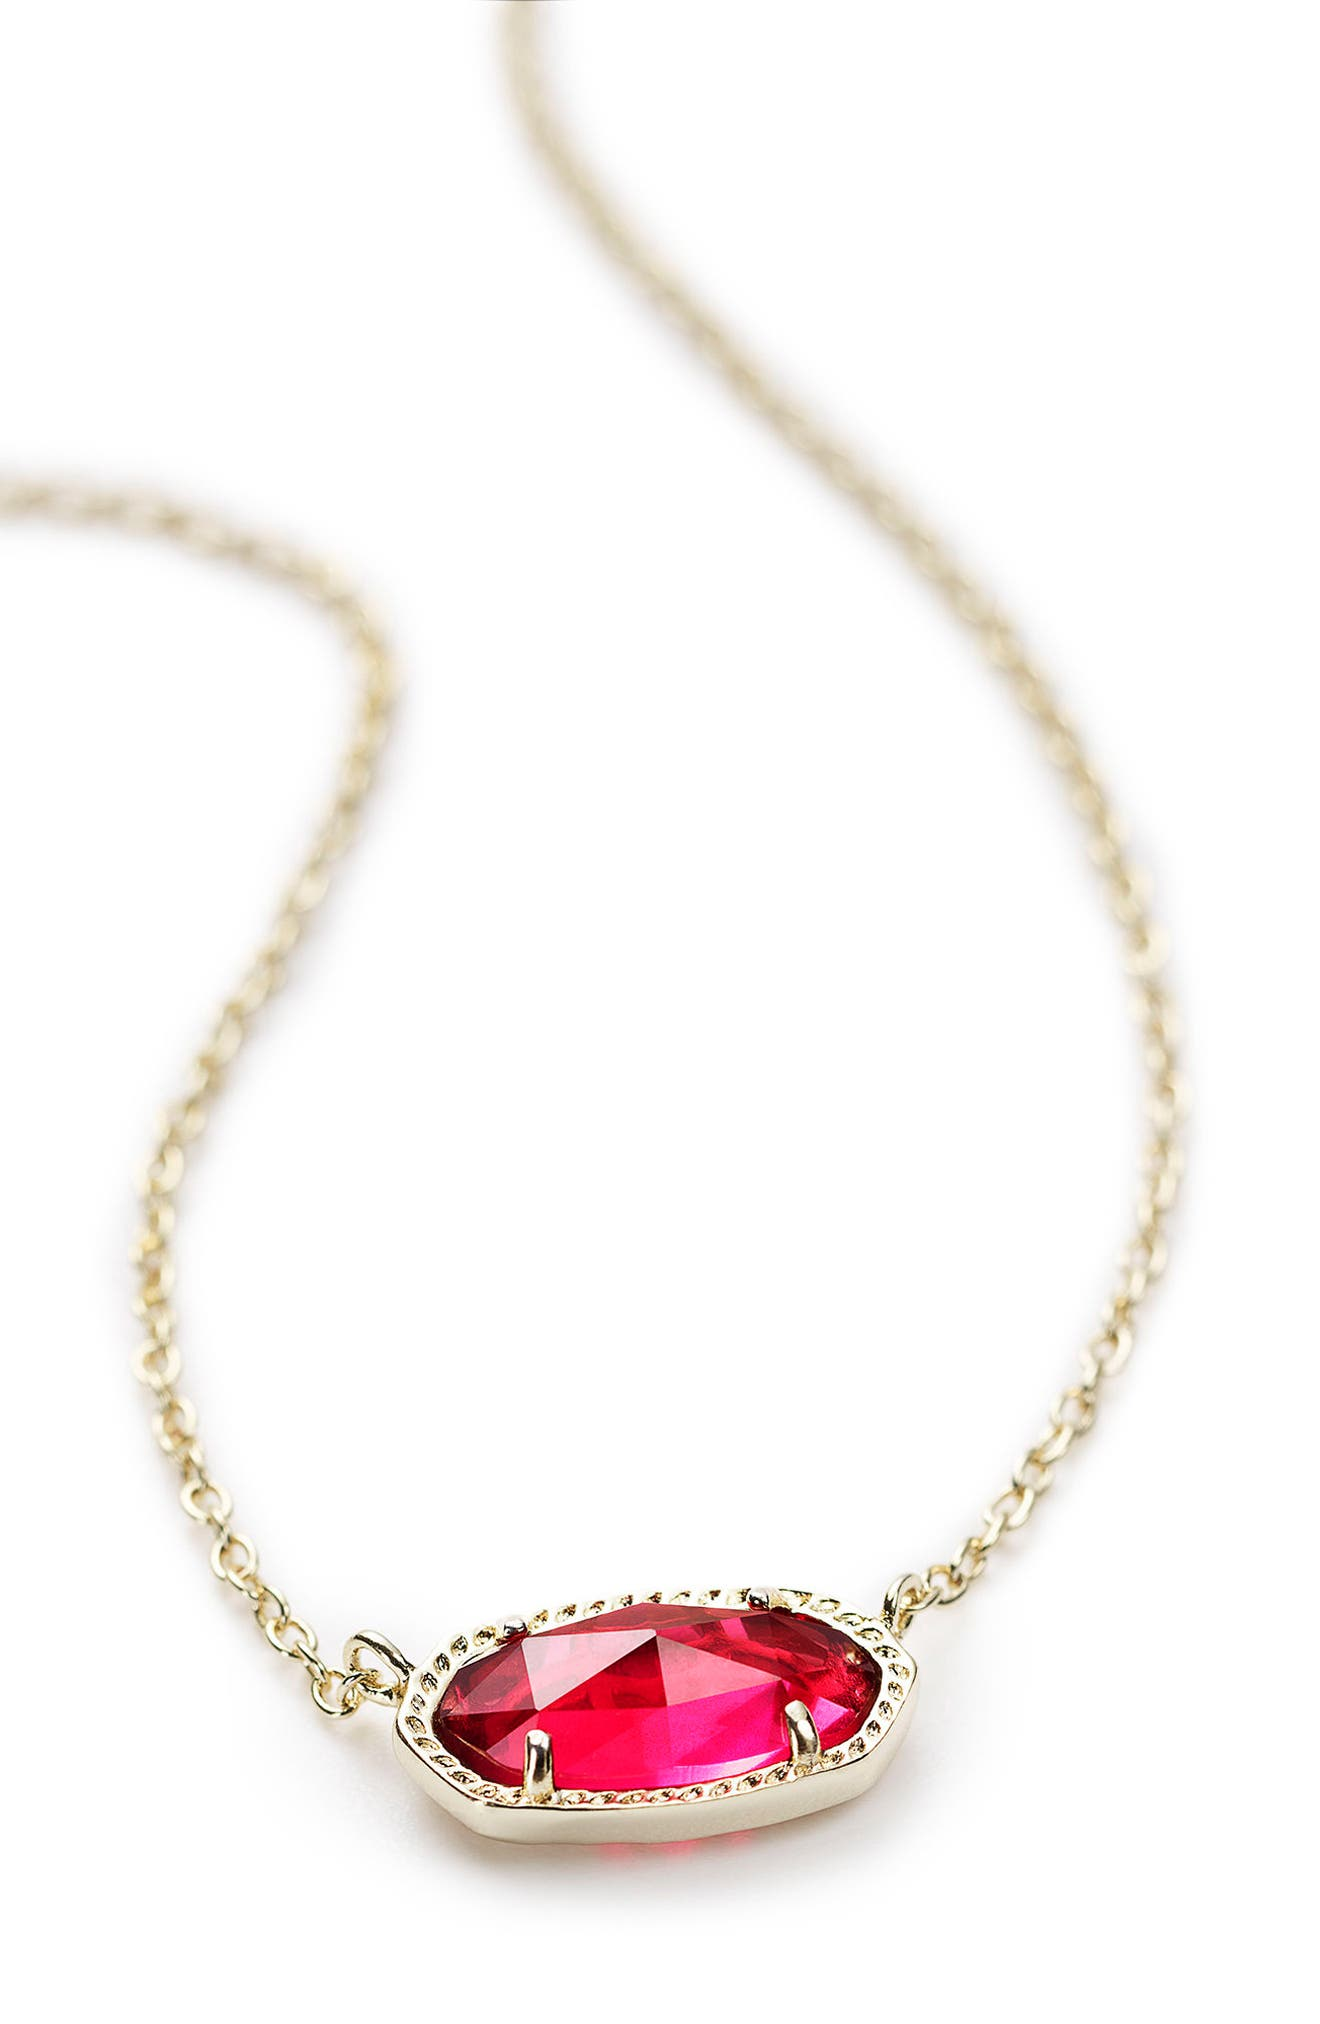 KENDRA SCOTT, Elisa Birthstone Pendant Necklace, Alternate thumbnail 5, color, JANUARY/BERRY/GOLD